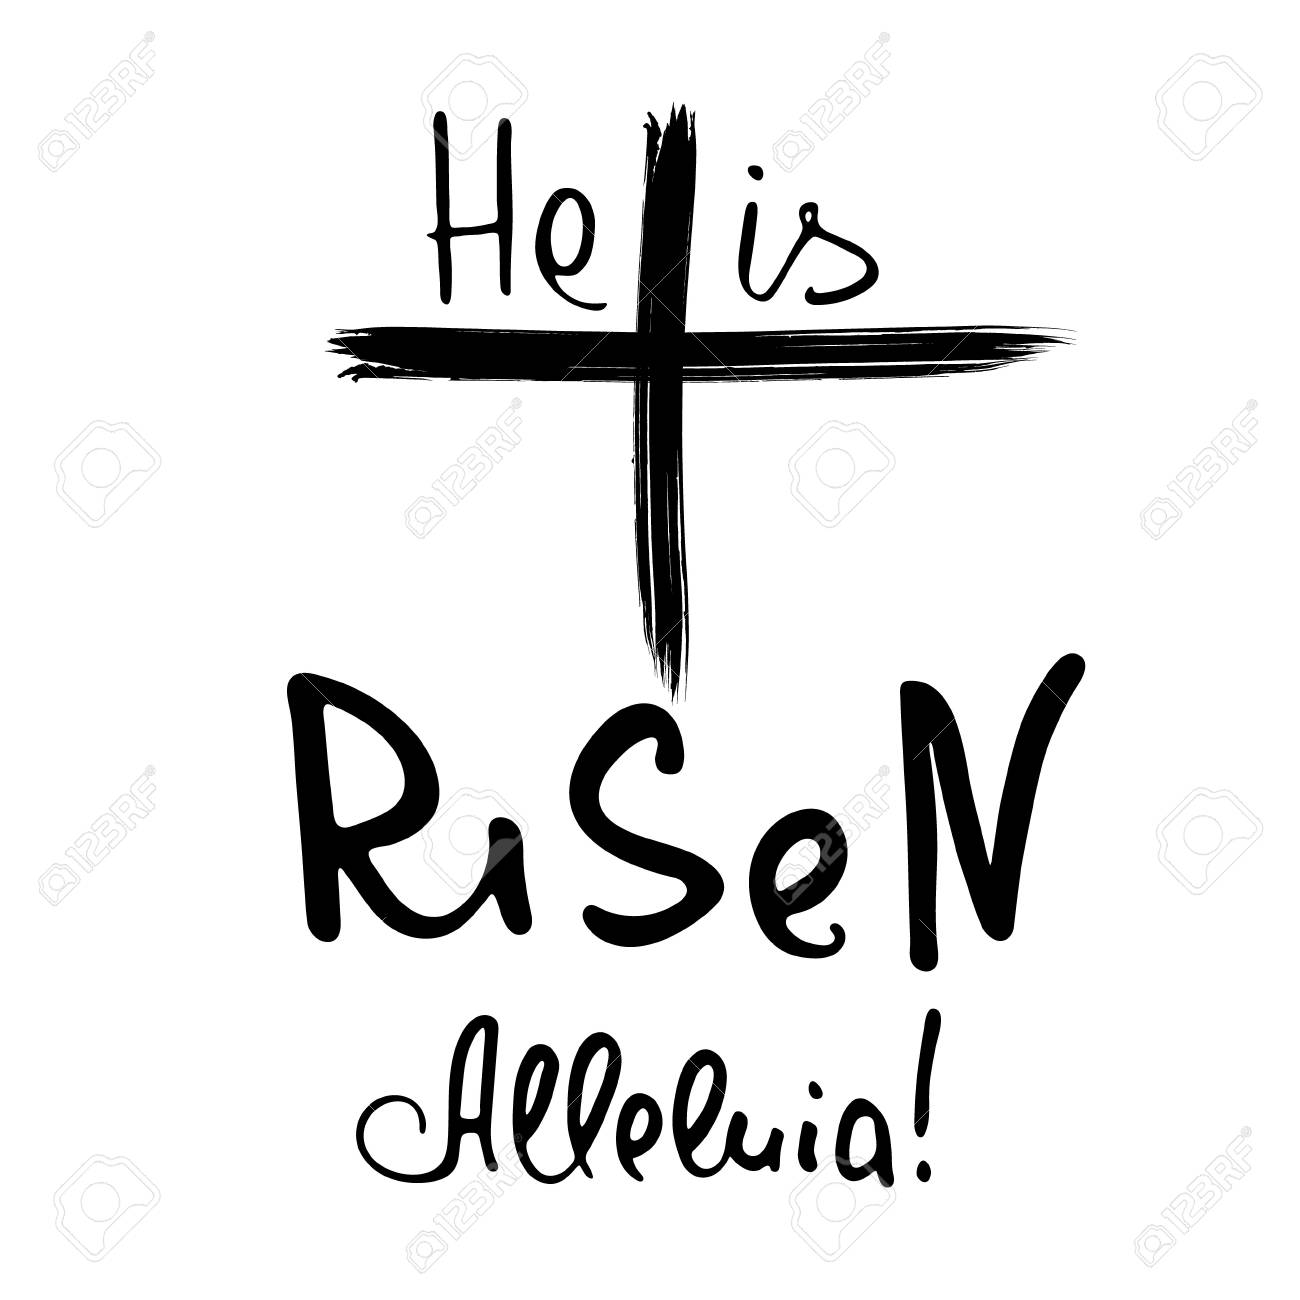 hight resolution of he is risen alleluia bible lettering brush calligraphy words about god